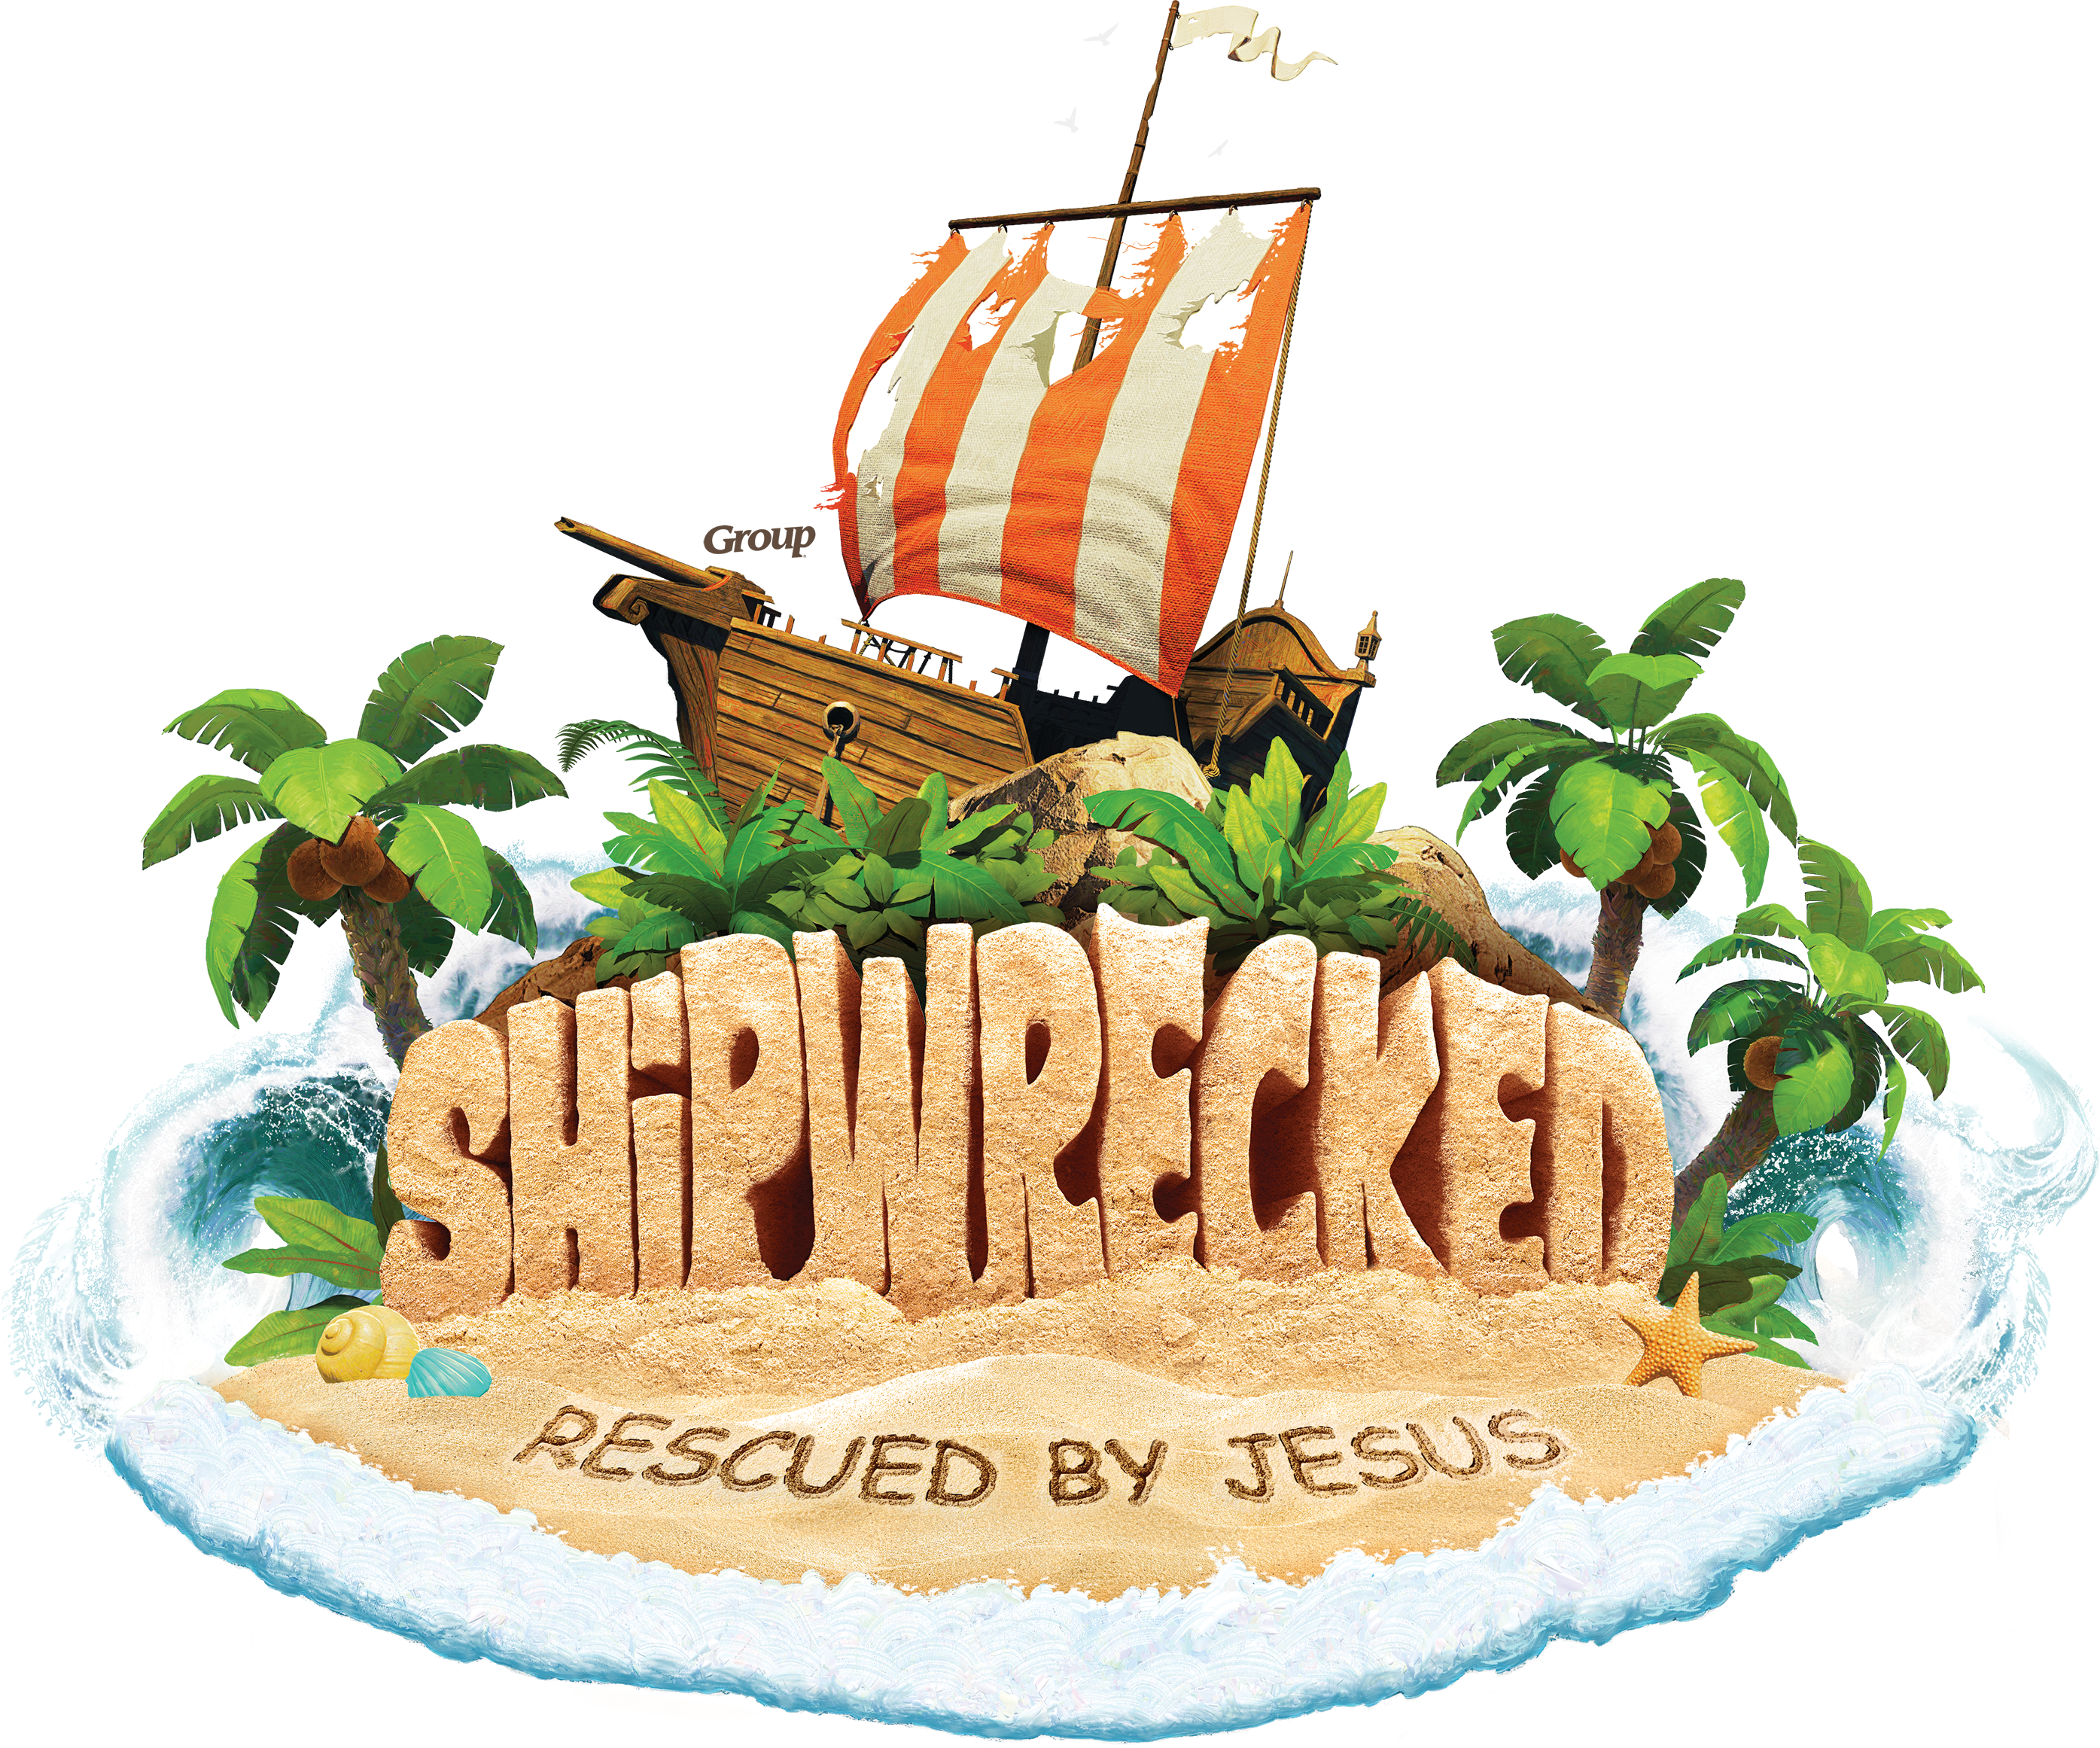 Shipwreck vector. Shipwrecked vbs free resources